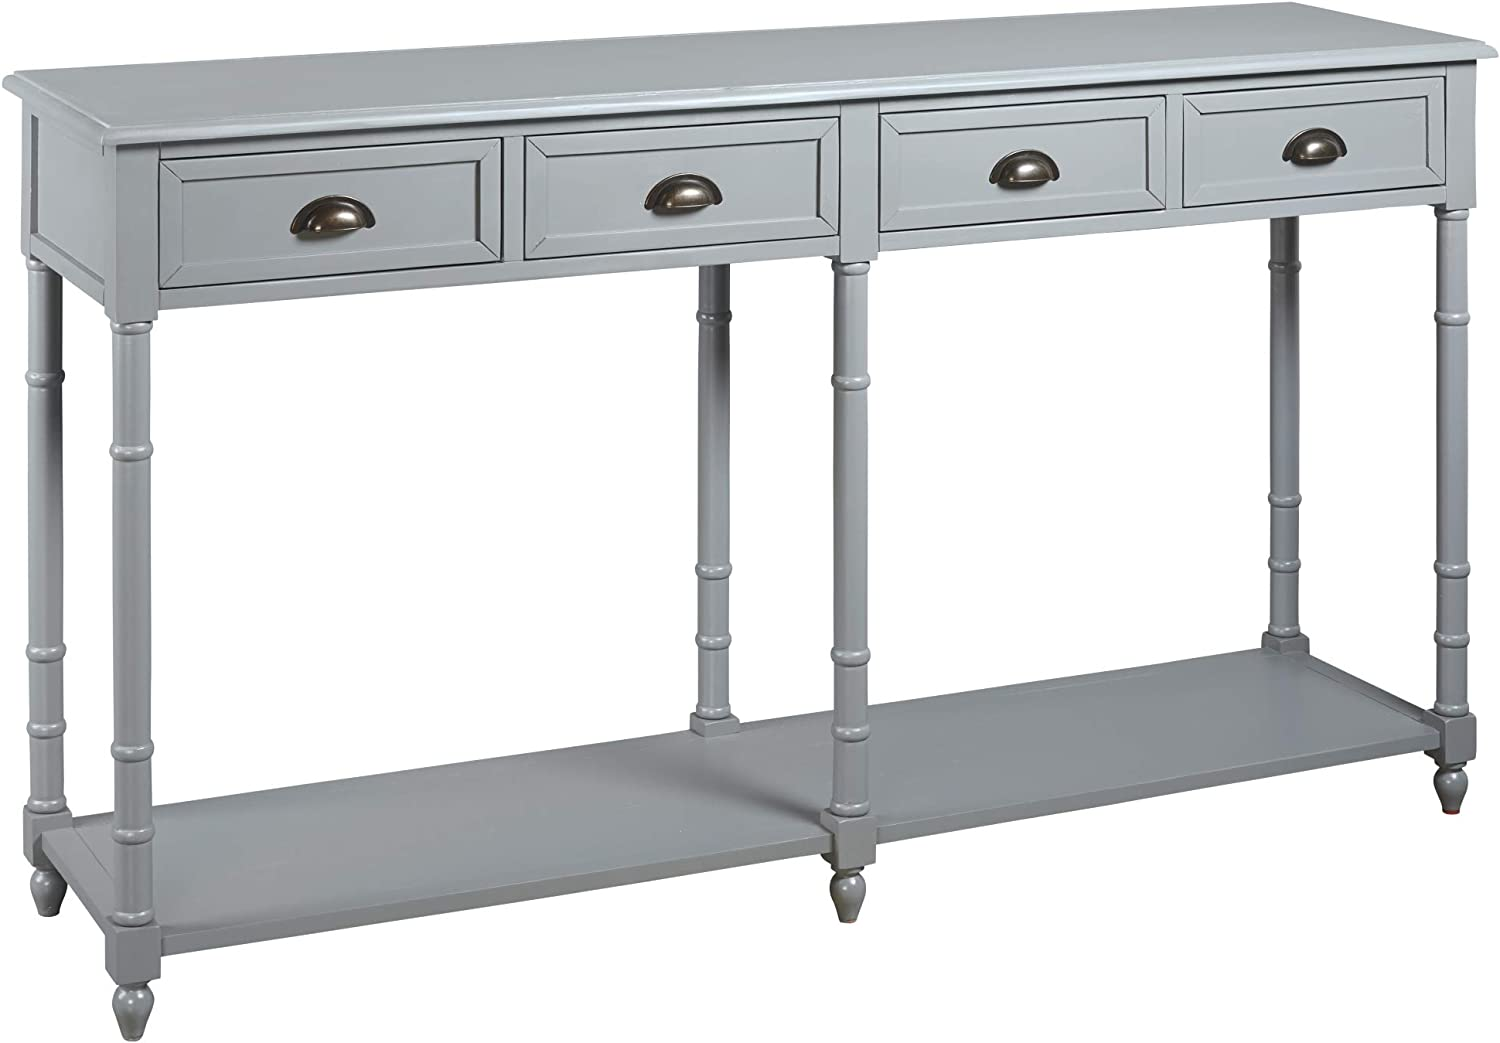 Signature Design By Ashley Eirdale Console Sofa Table Vintage Casual Gray Furniture Decor